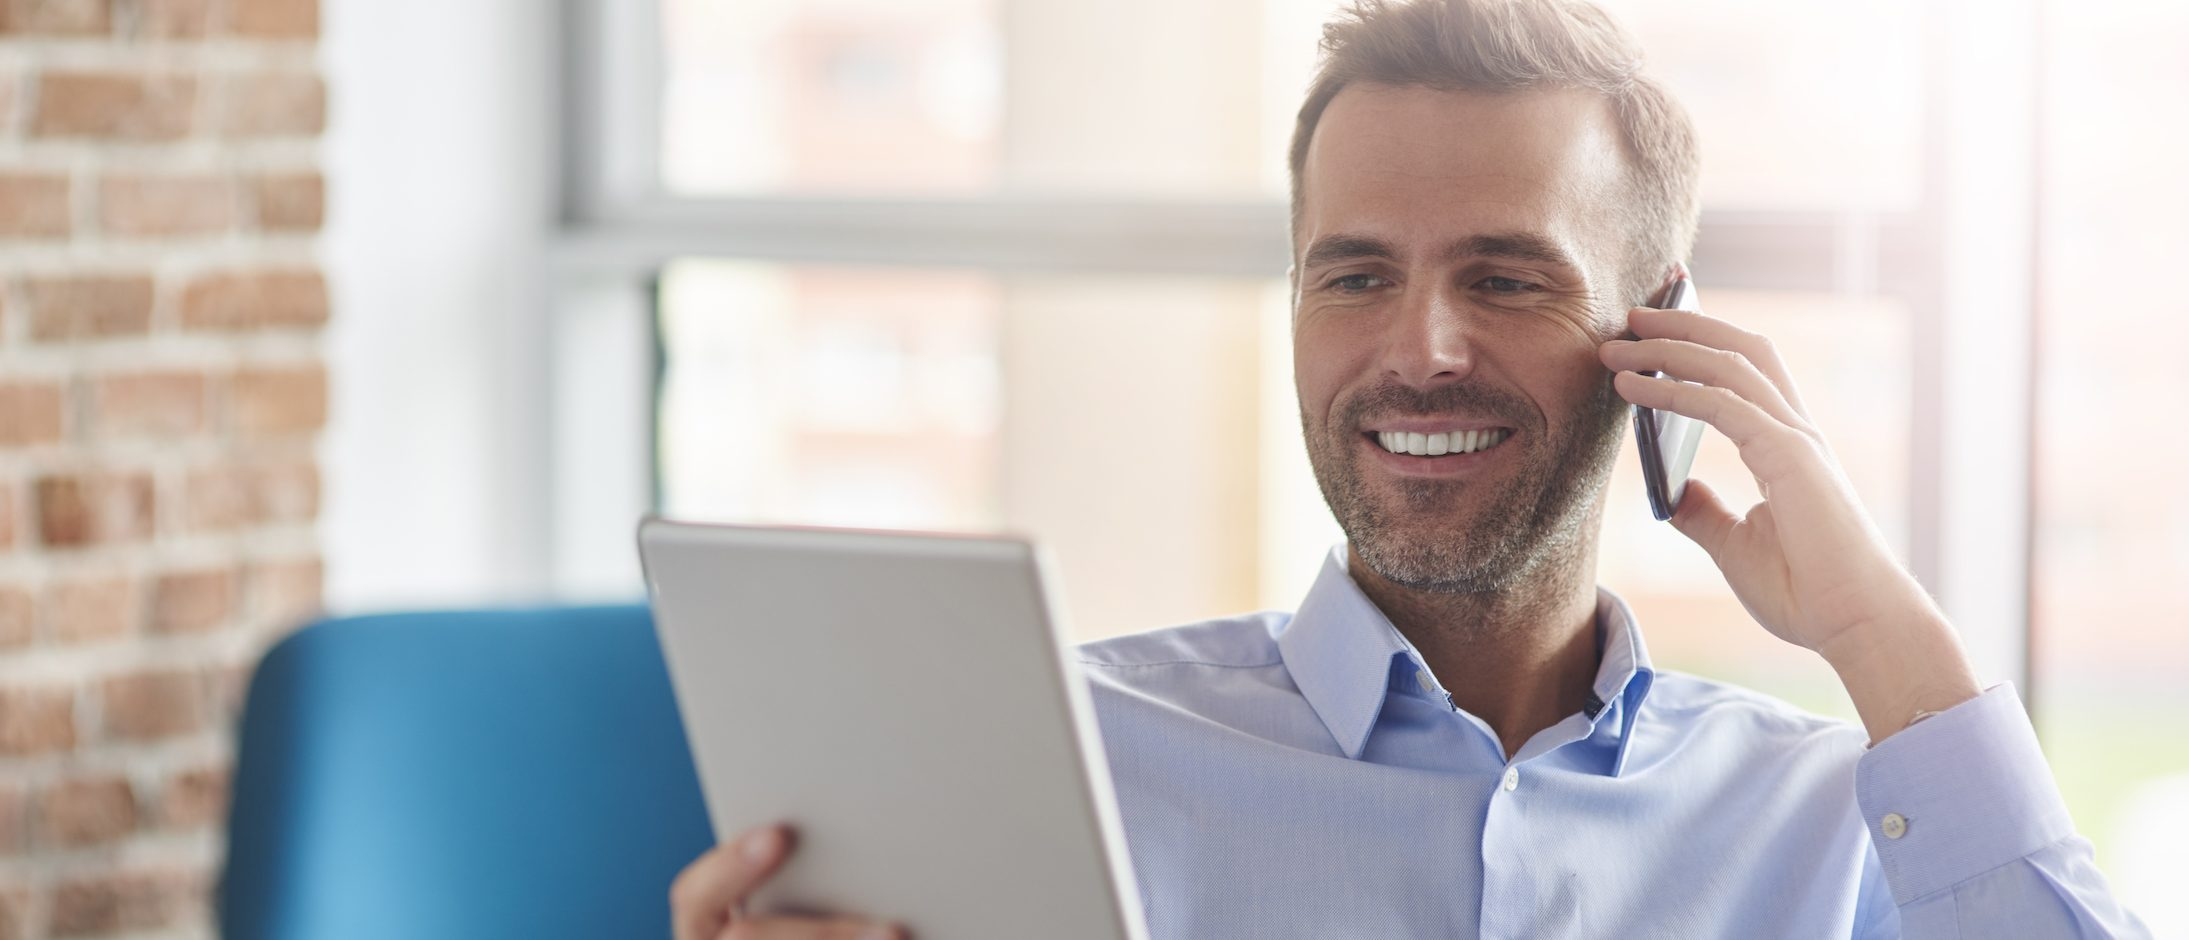 Business leader reading customer data   How knowing your customer can save business   Focused Energy outsourced finance cfos